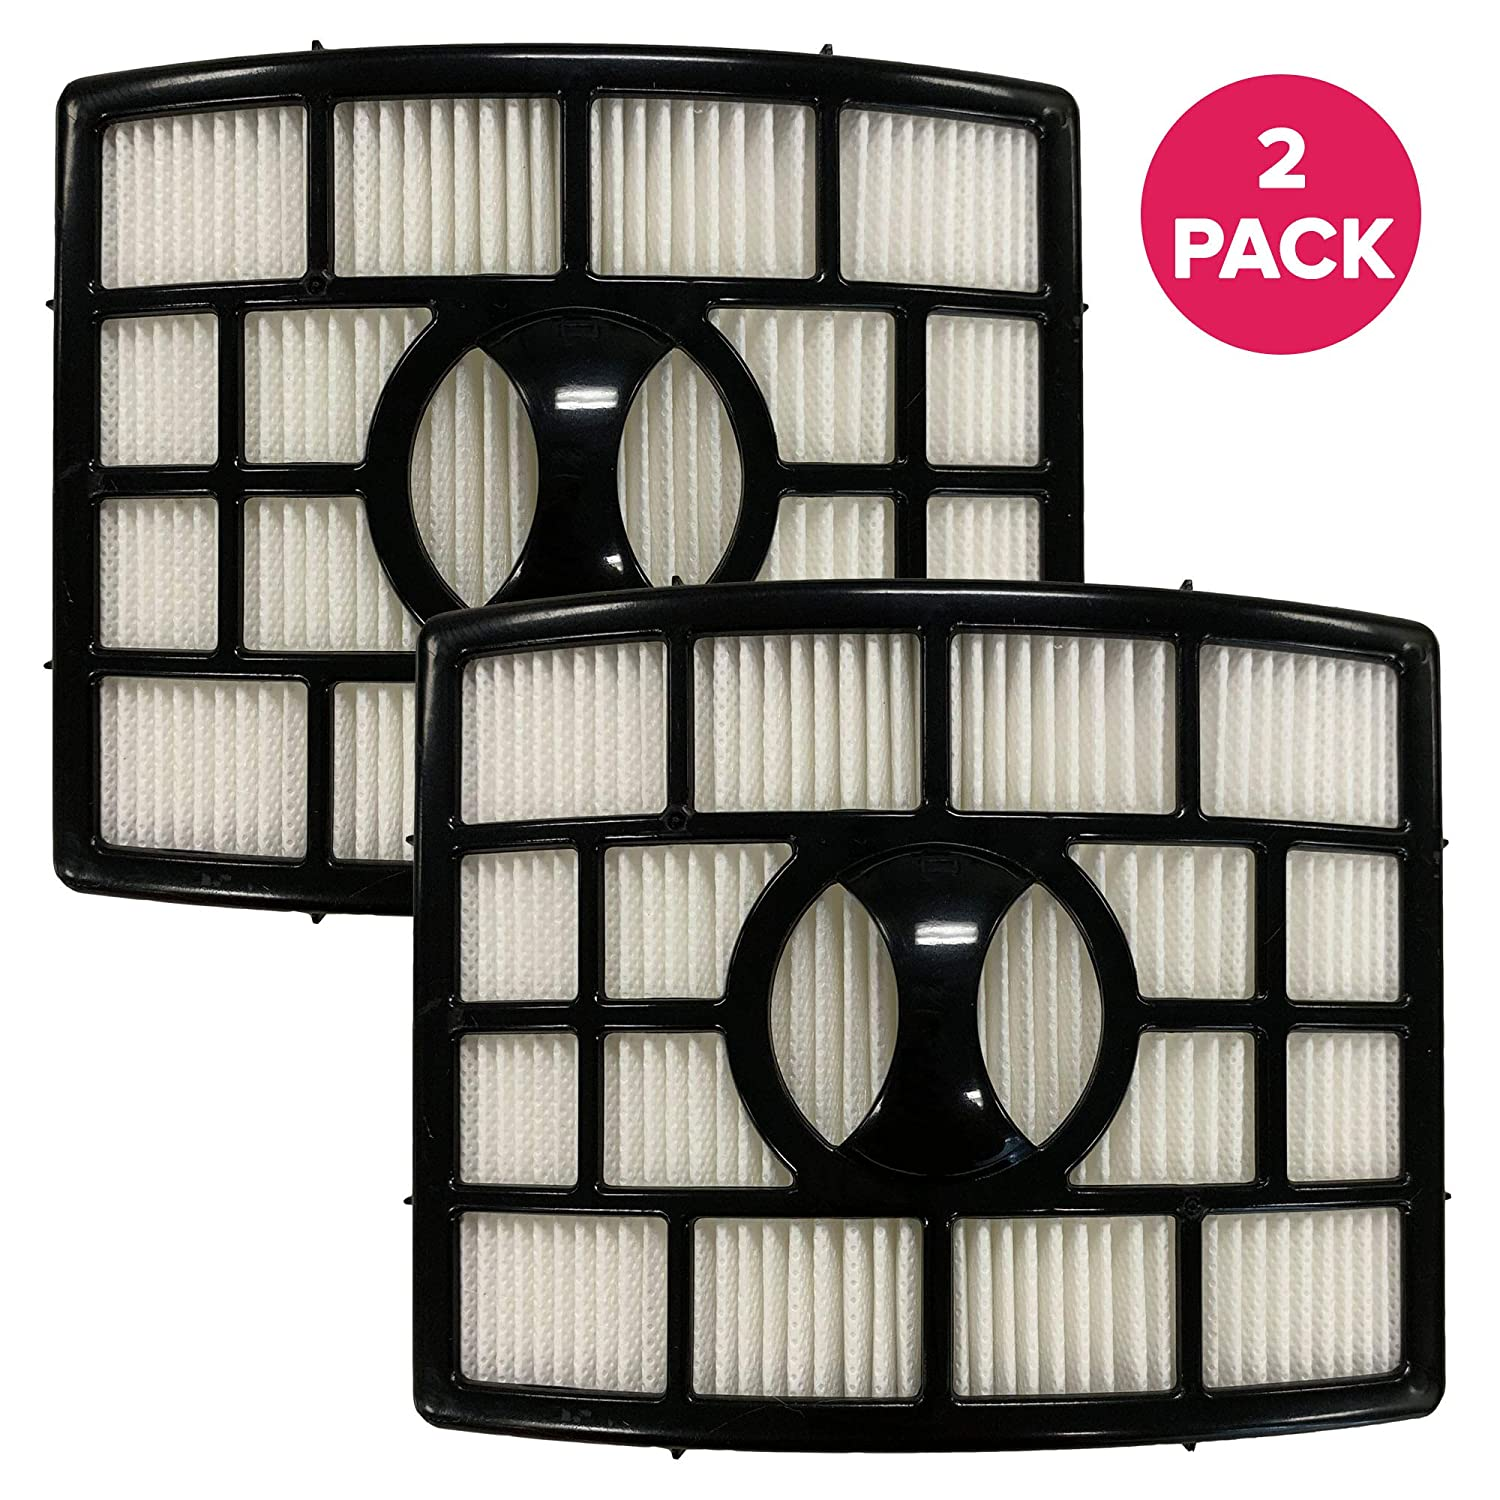 Think Crucial Replacement Vacuum Post Filter Compatible with Shark Vacuum Parts XHF650, Models Rotator Powered Lift-Away, Duoclean Vacs NV650, NV650 NV835 NV651 NV652 NV750, HEPA Style, Bulk (2 Pack)